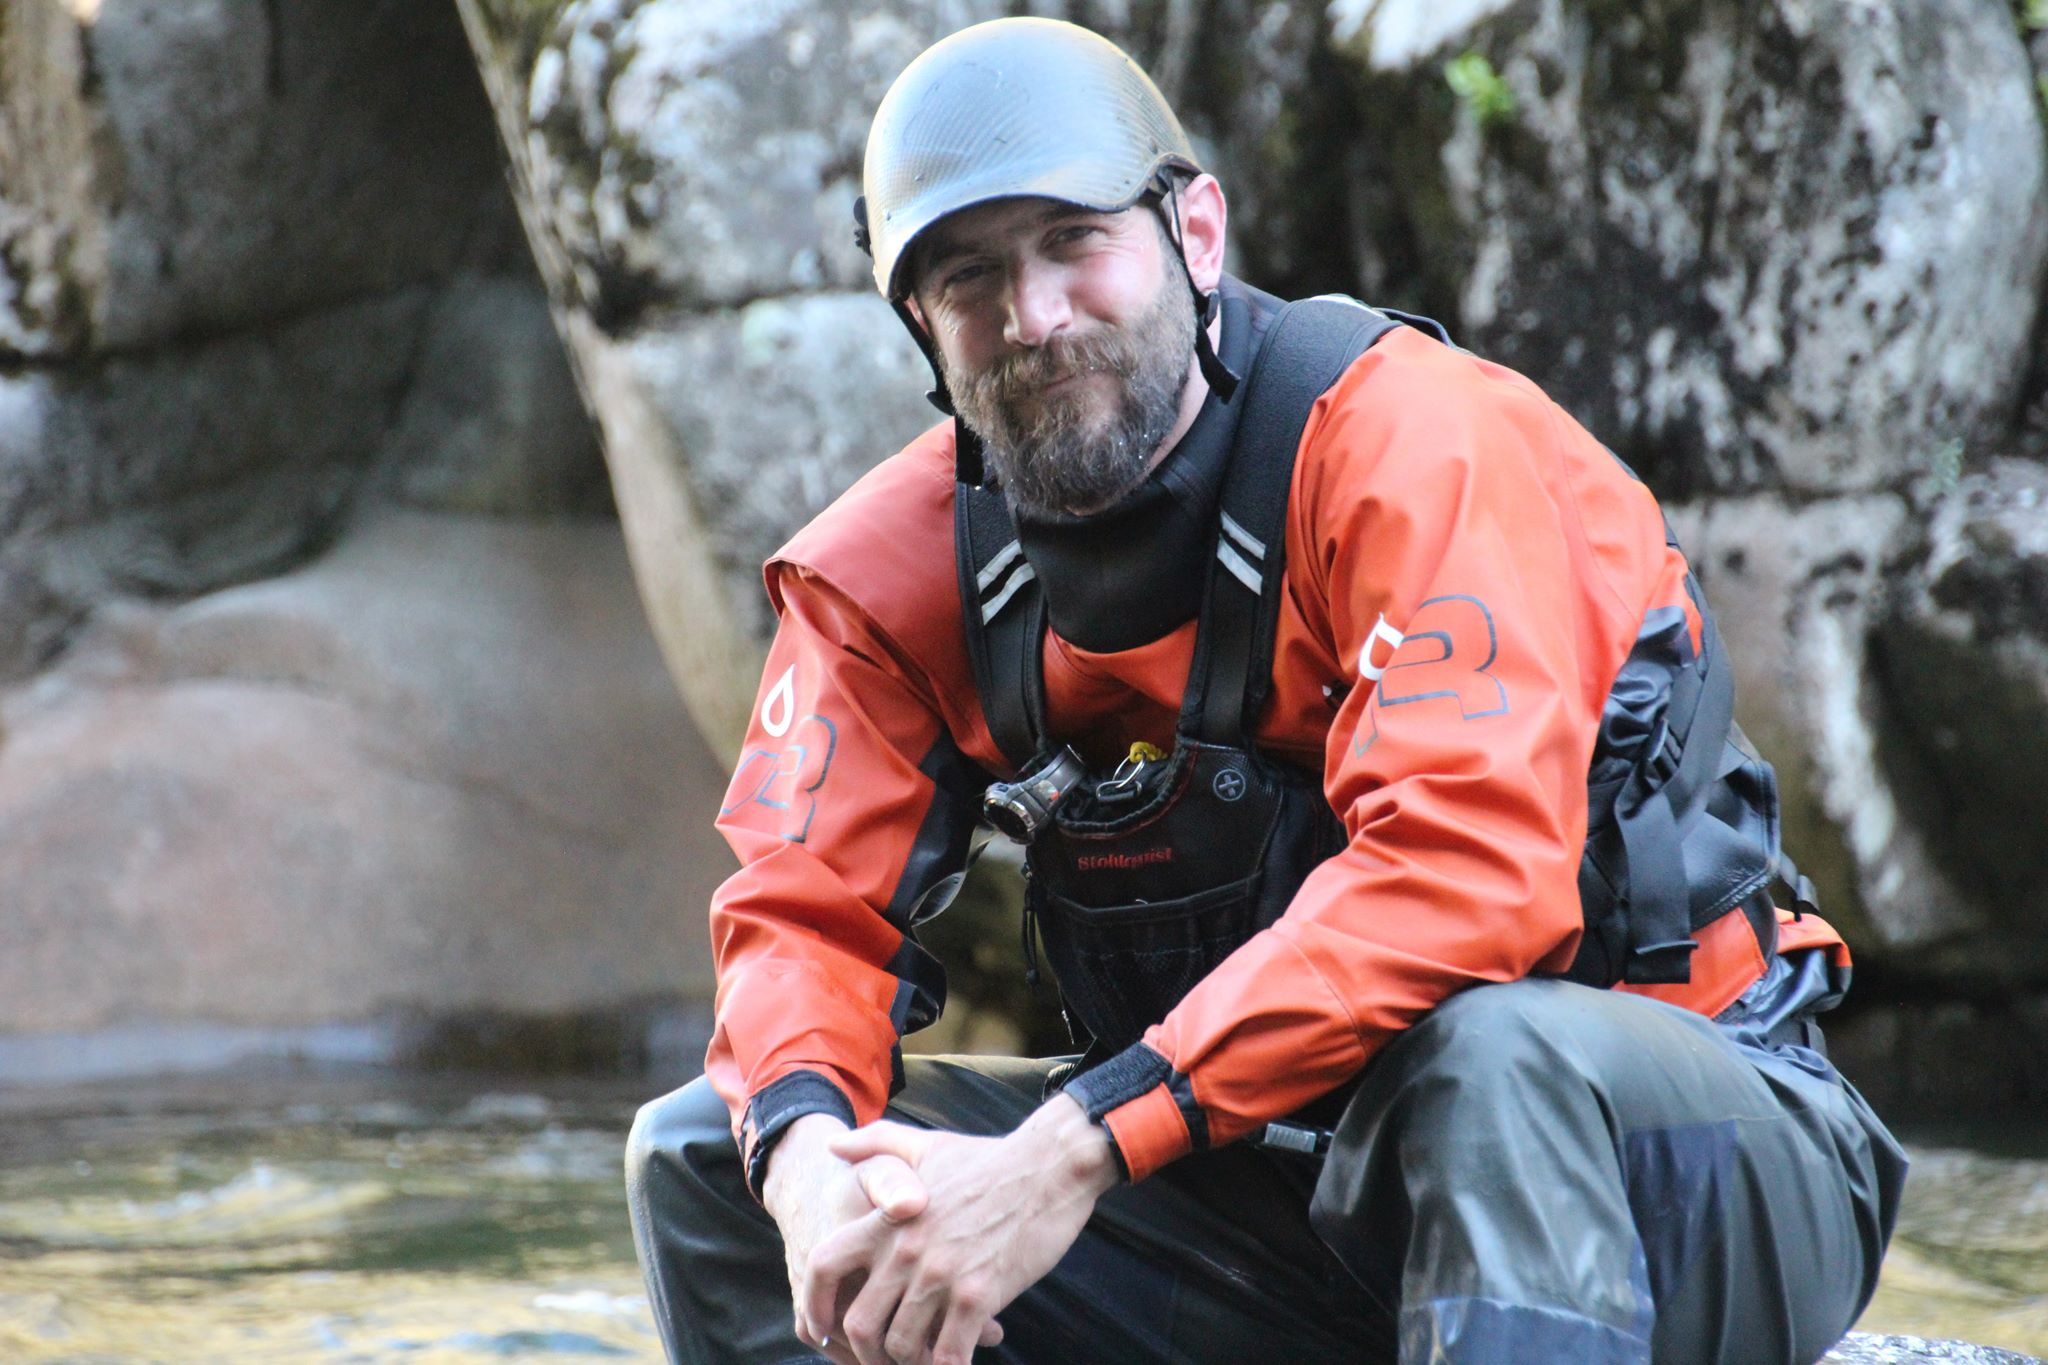 """""""The South Salmon is the reason I moved to McCall from Maine 18 years ago and have made it my full time residence. Idaho wilderness is simply stunning. It calls to me like nowhere else on the planet. My profession takes me across the globe for approximately 26 weeks a year leading wilderness trips and teaching river rescue and first aid classes. The best part of traveling? Coming home to Idaho. I've been paddling since 1988 and have been on rivers in nine countries including some first descents in wildly remote places. The South Salmon continues to be my all-time favorite river. I can't even put a finger on it. Don't really need to. We just go there and we get it. It is truly special.""""   -Nate Ostis, McCall, Idaho"""